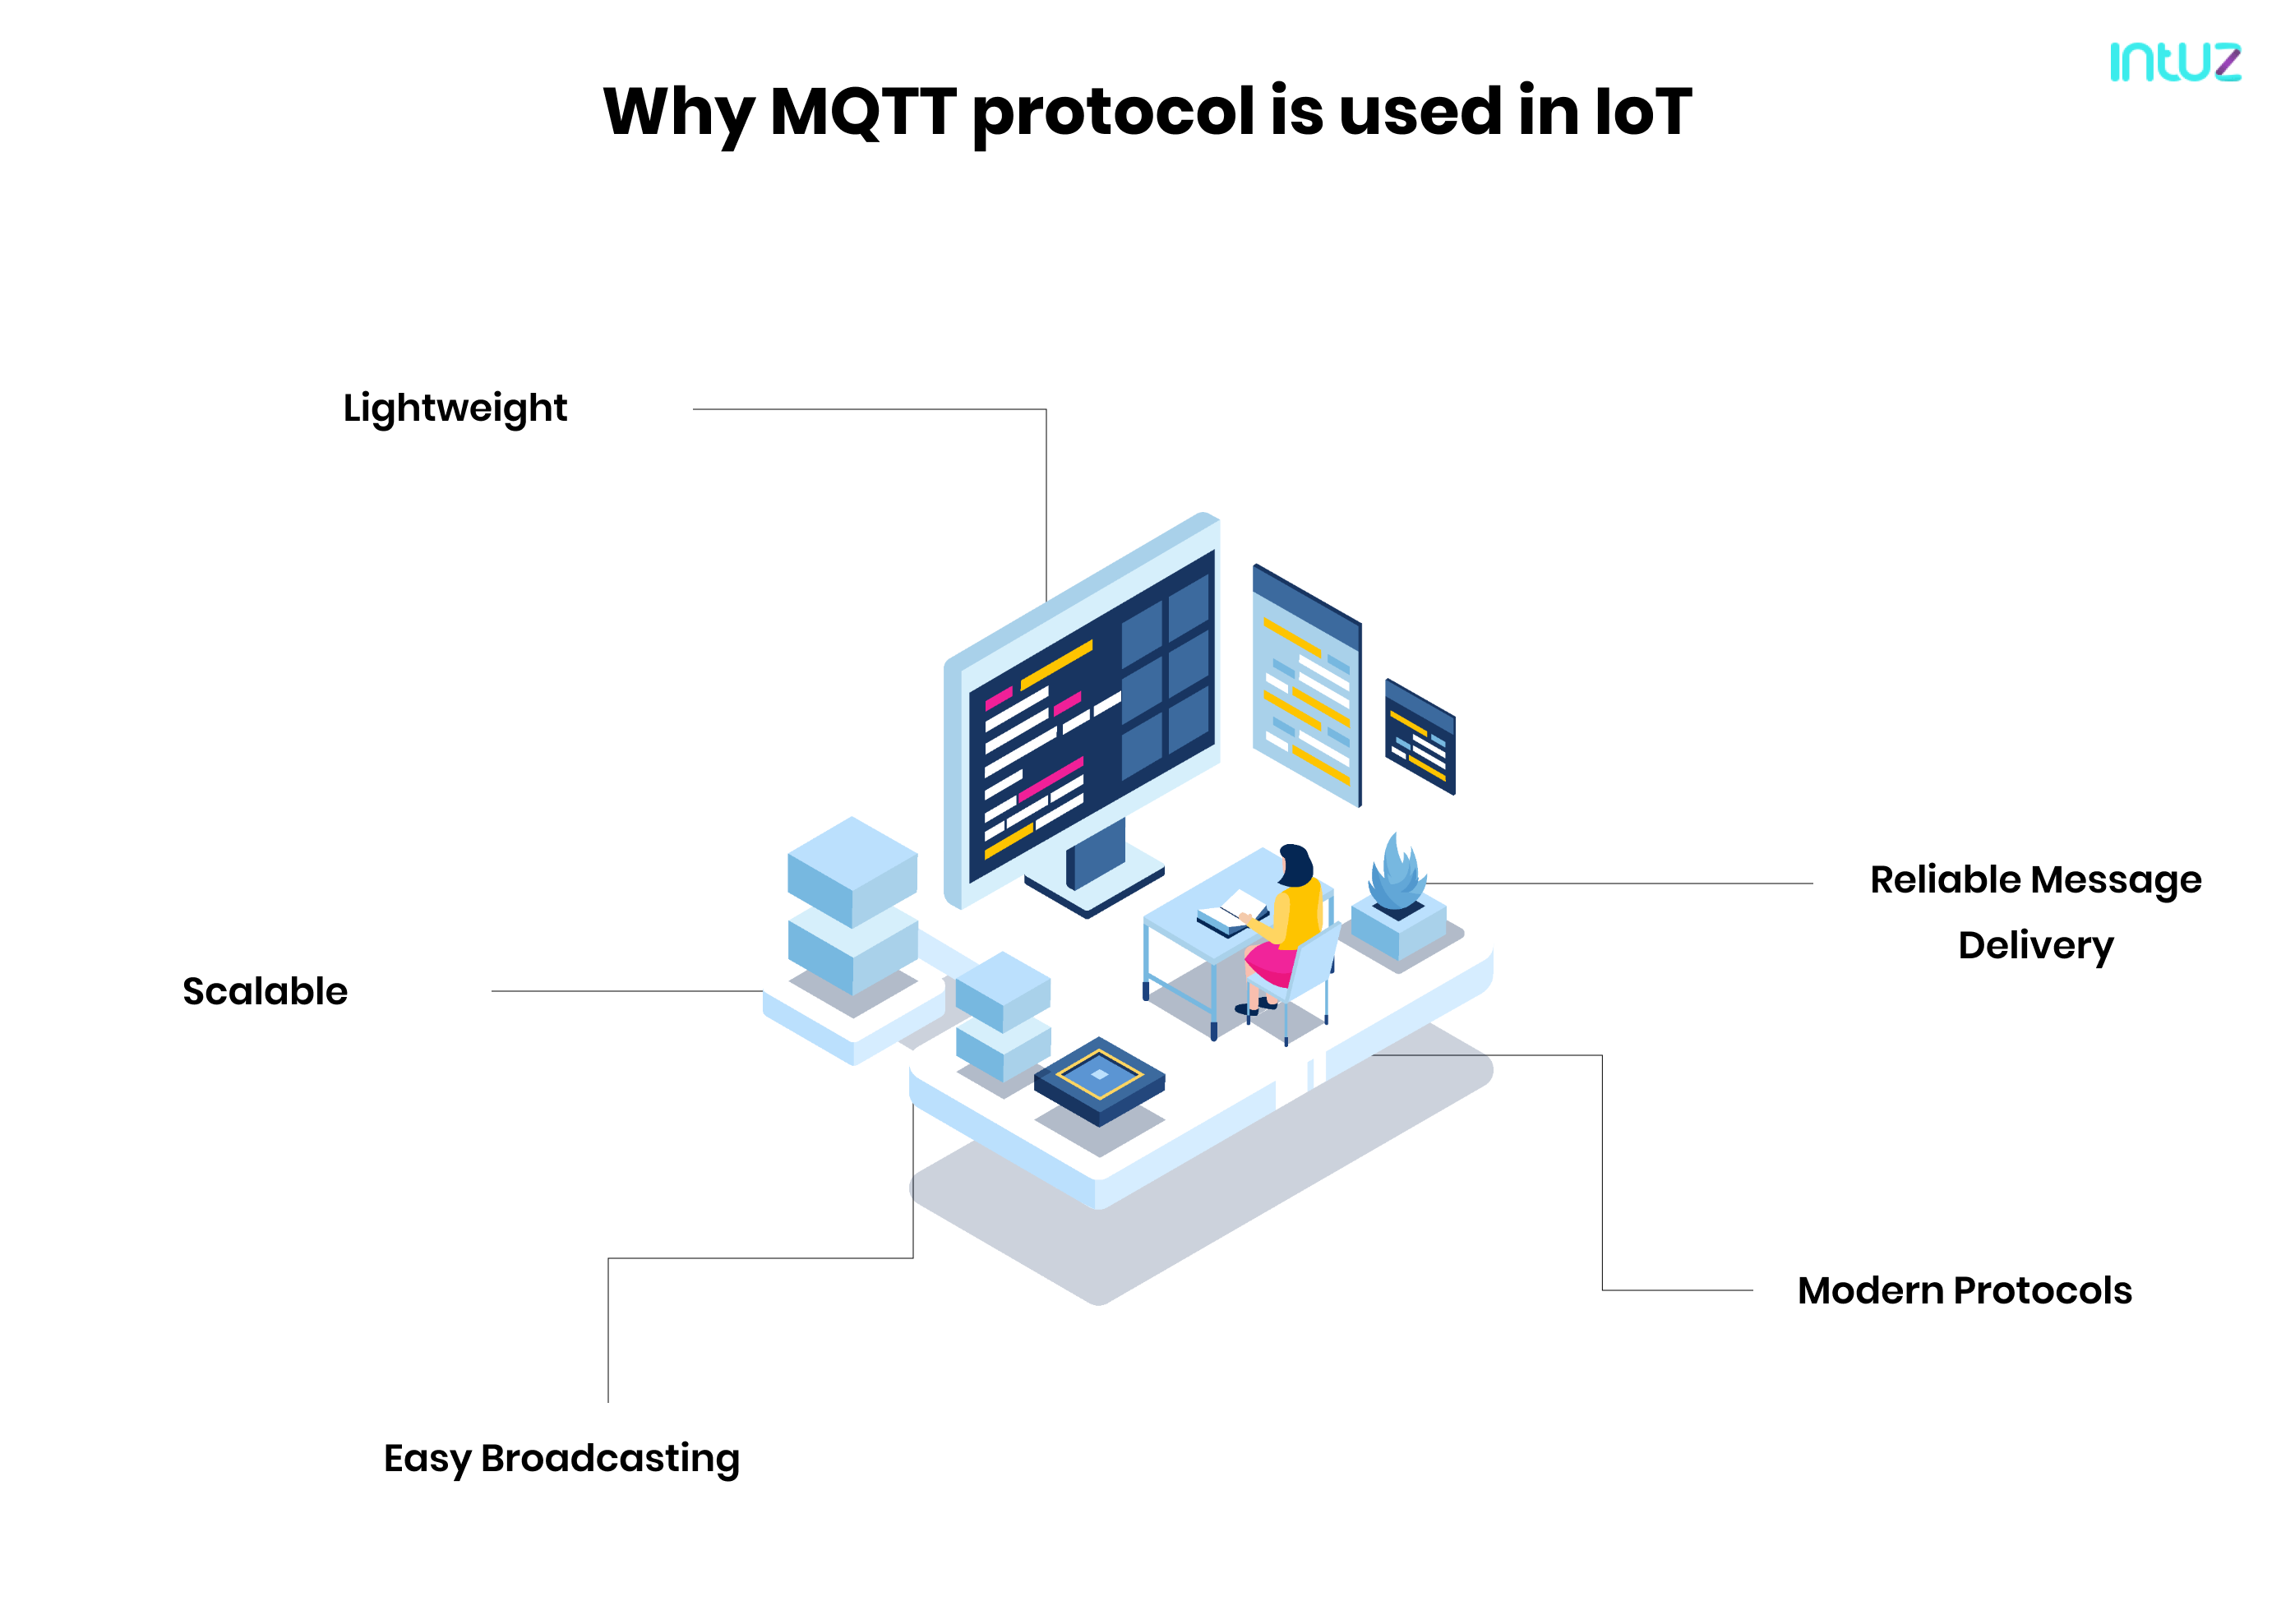 Why MQTT protocol is used in IoT